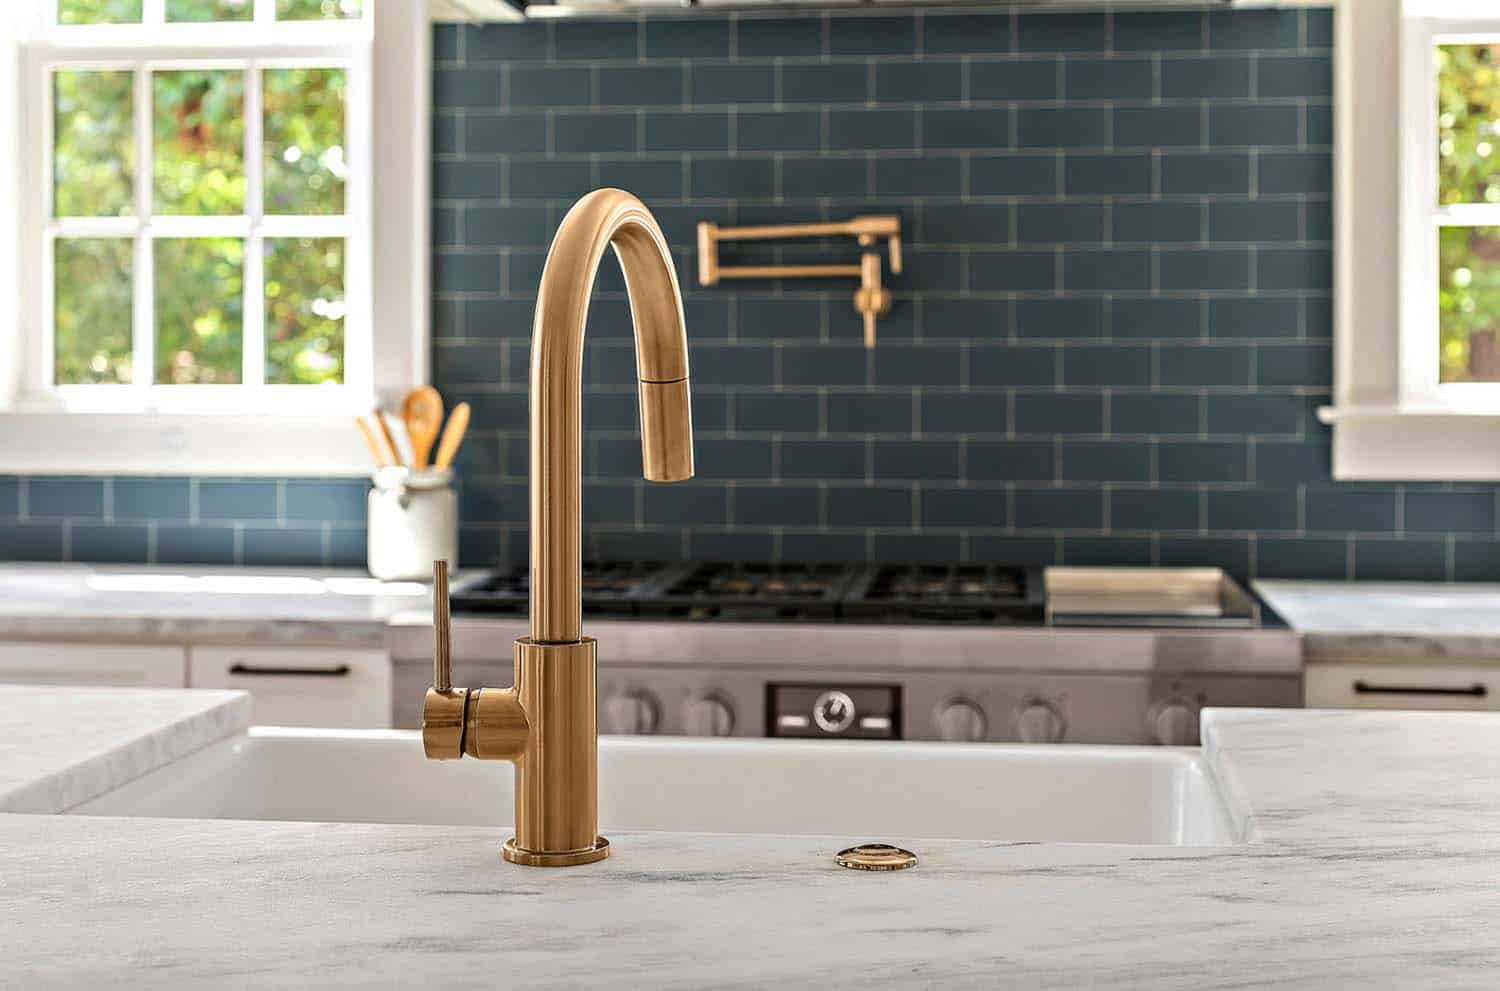 kitchen-faucet-close-up-transitional